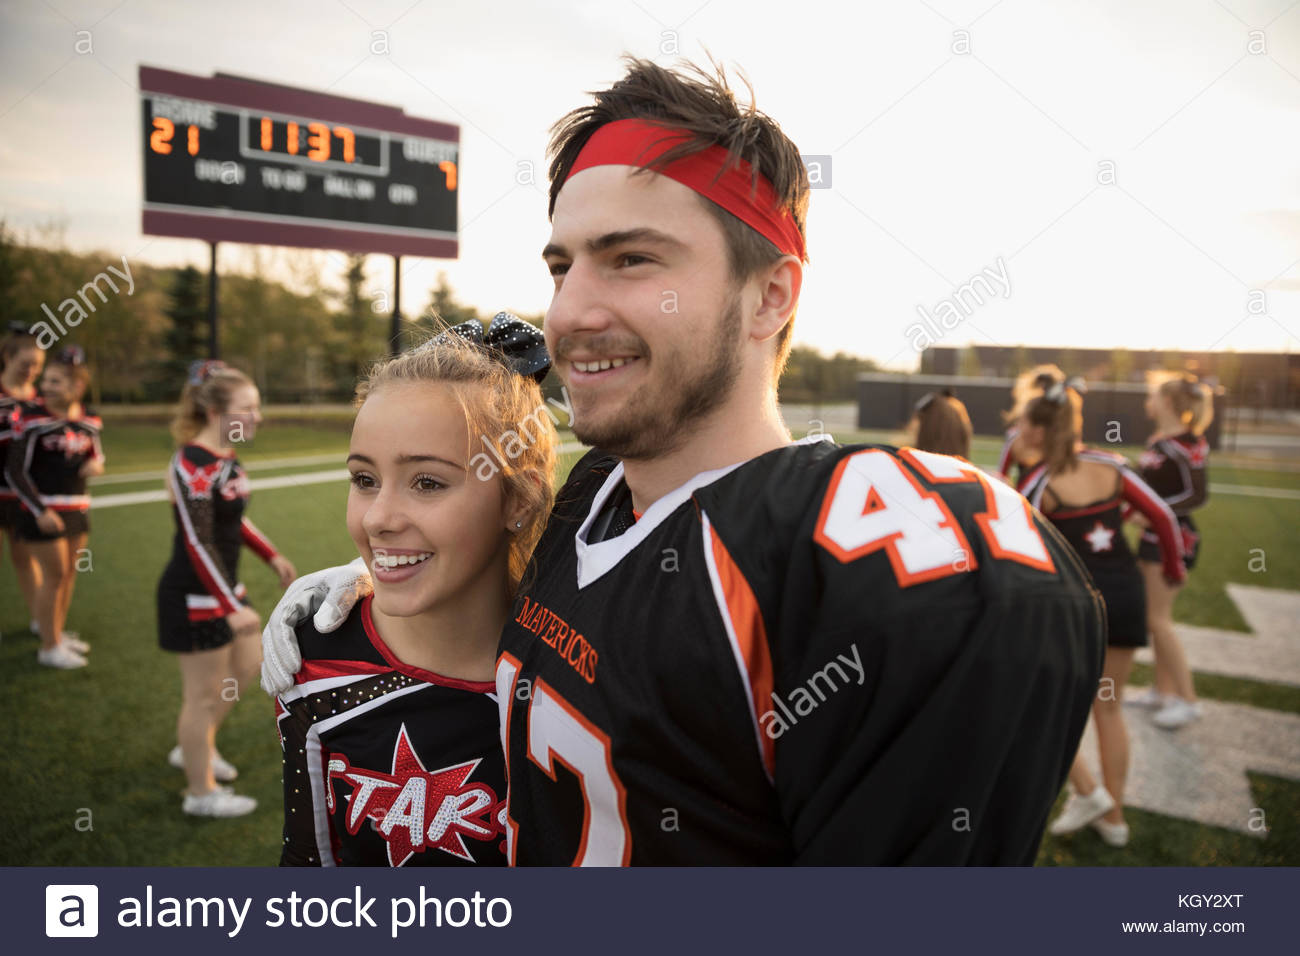 Cheerleaders dating football players